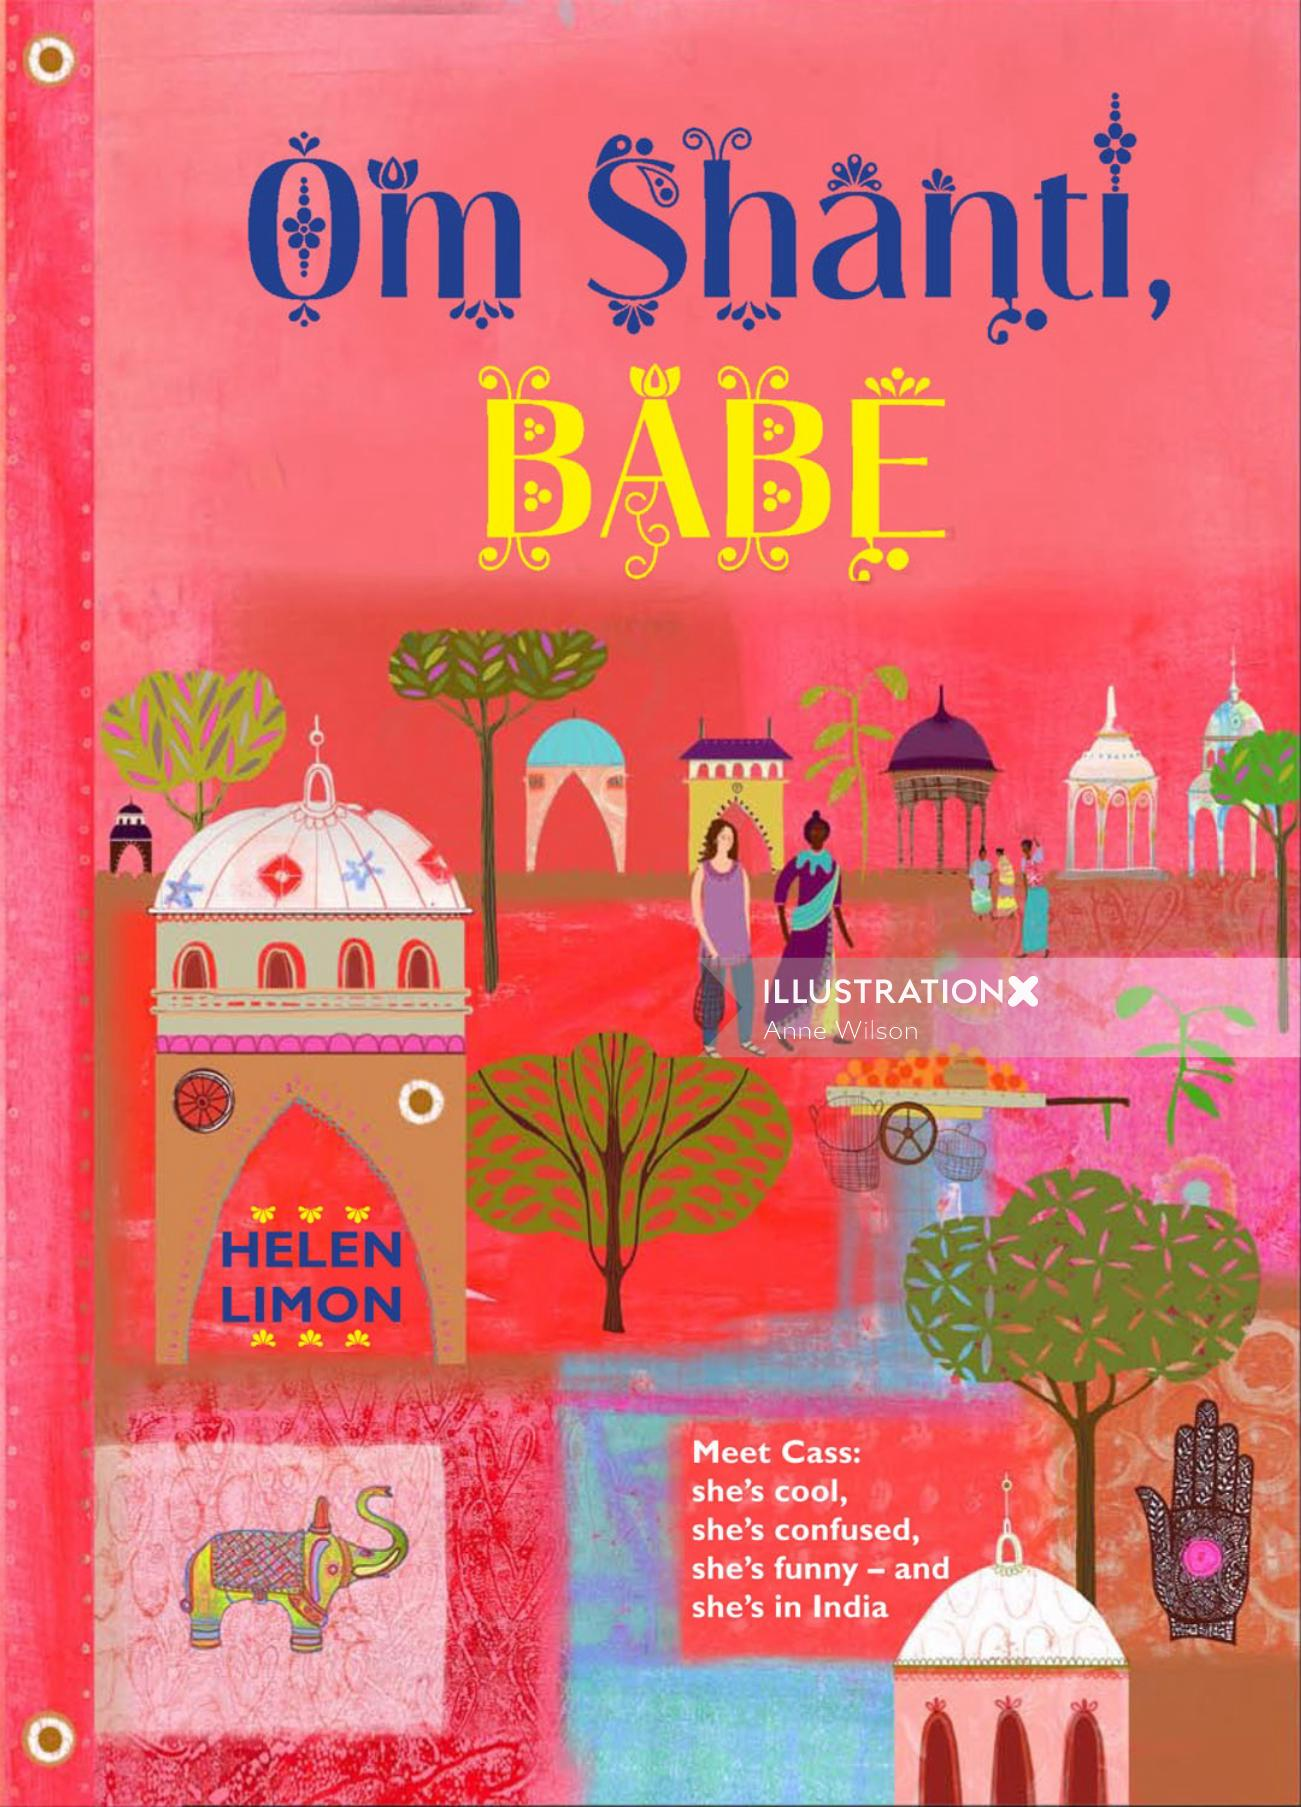 Book cover illustration for the Om Shanti Babe